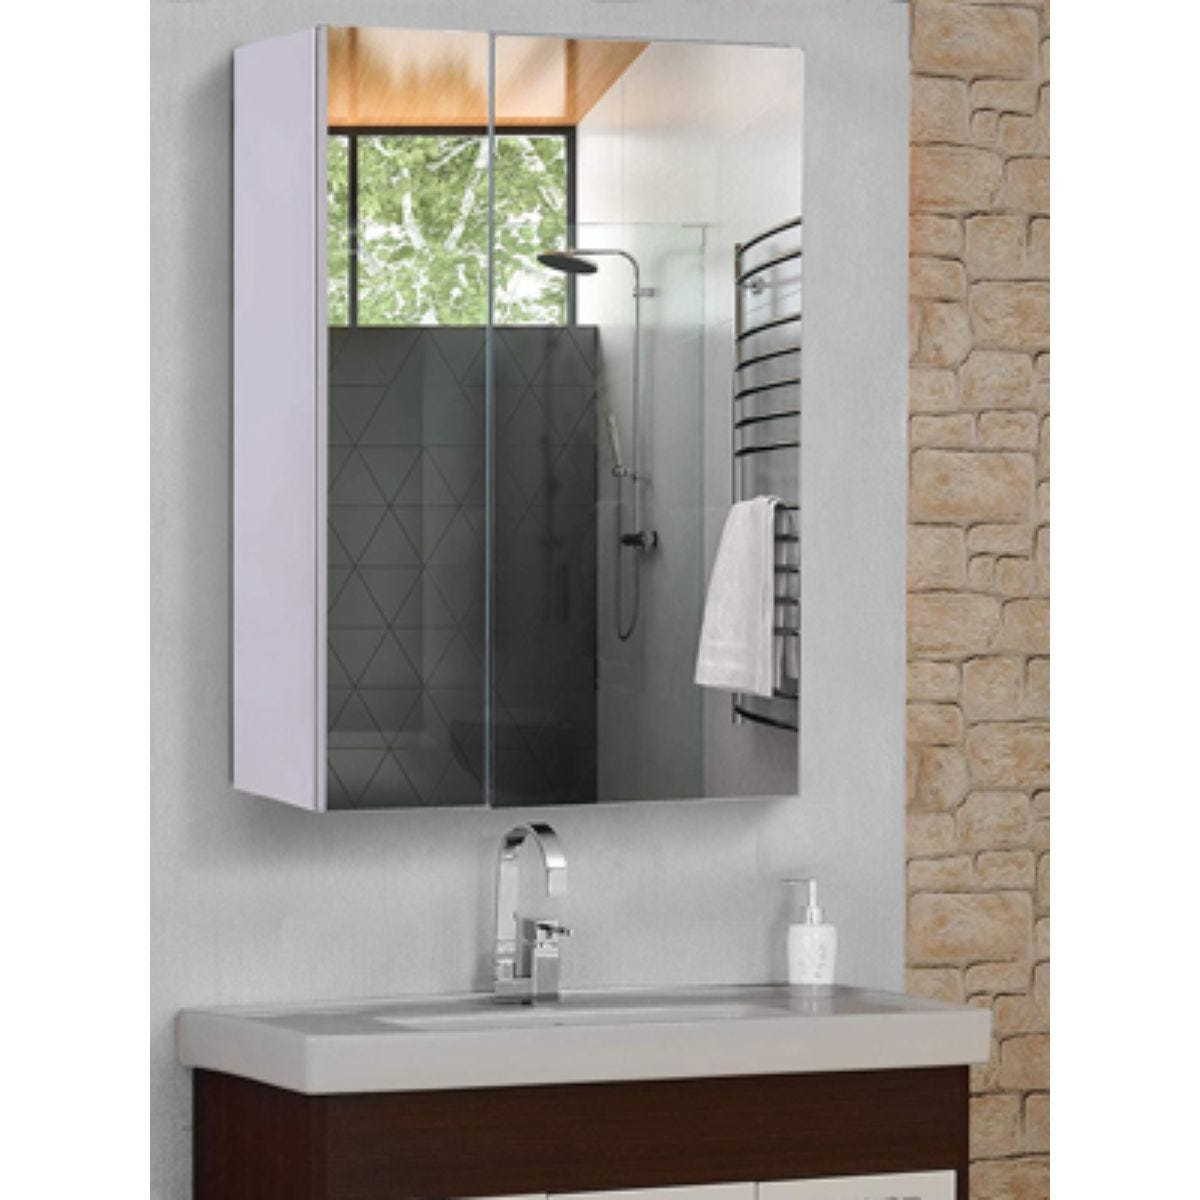 Stainless Steel Bathroom Storage Cabinet With Double Mirror Doors 430mm